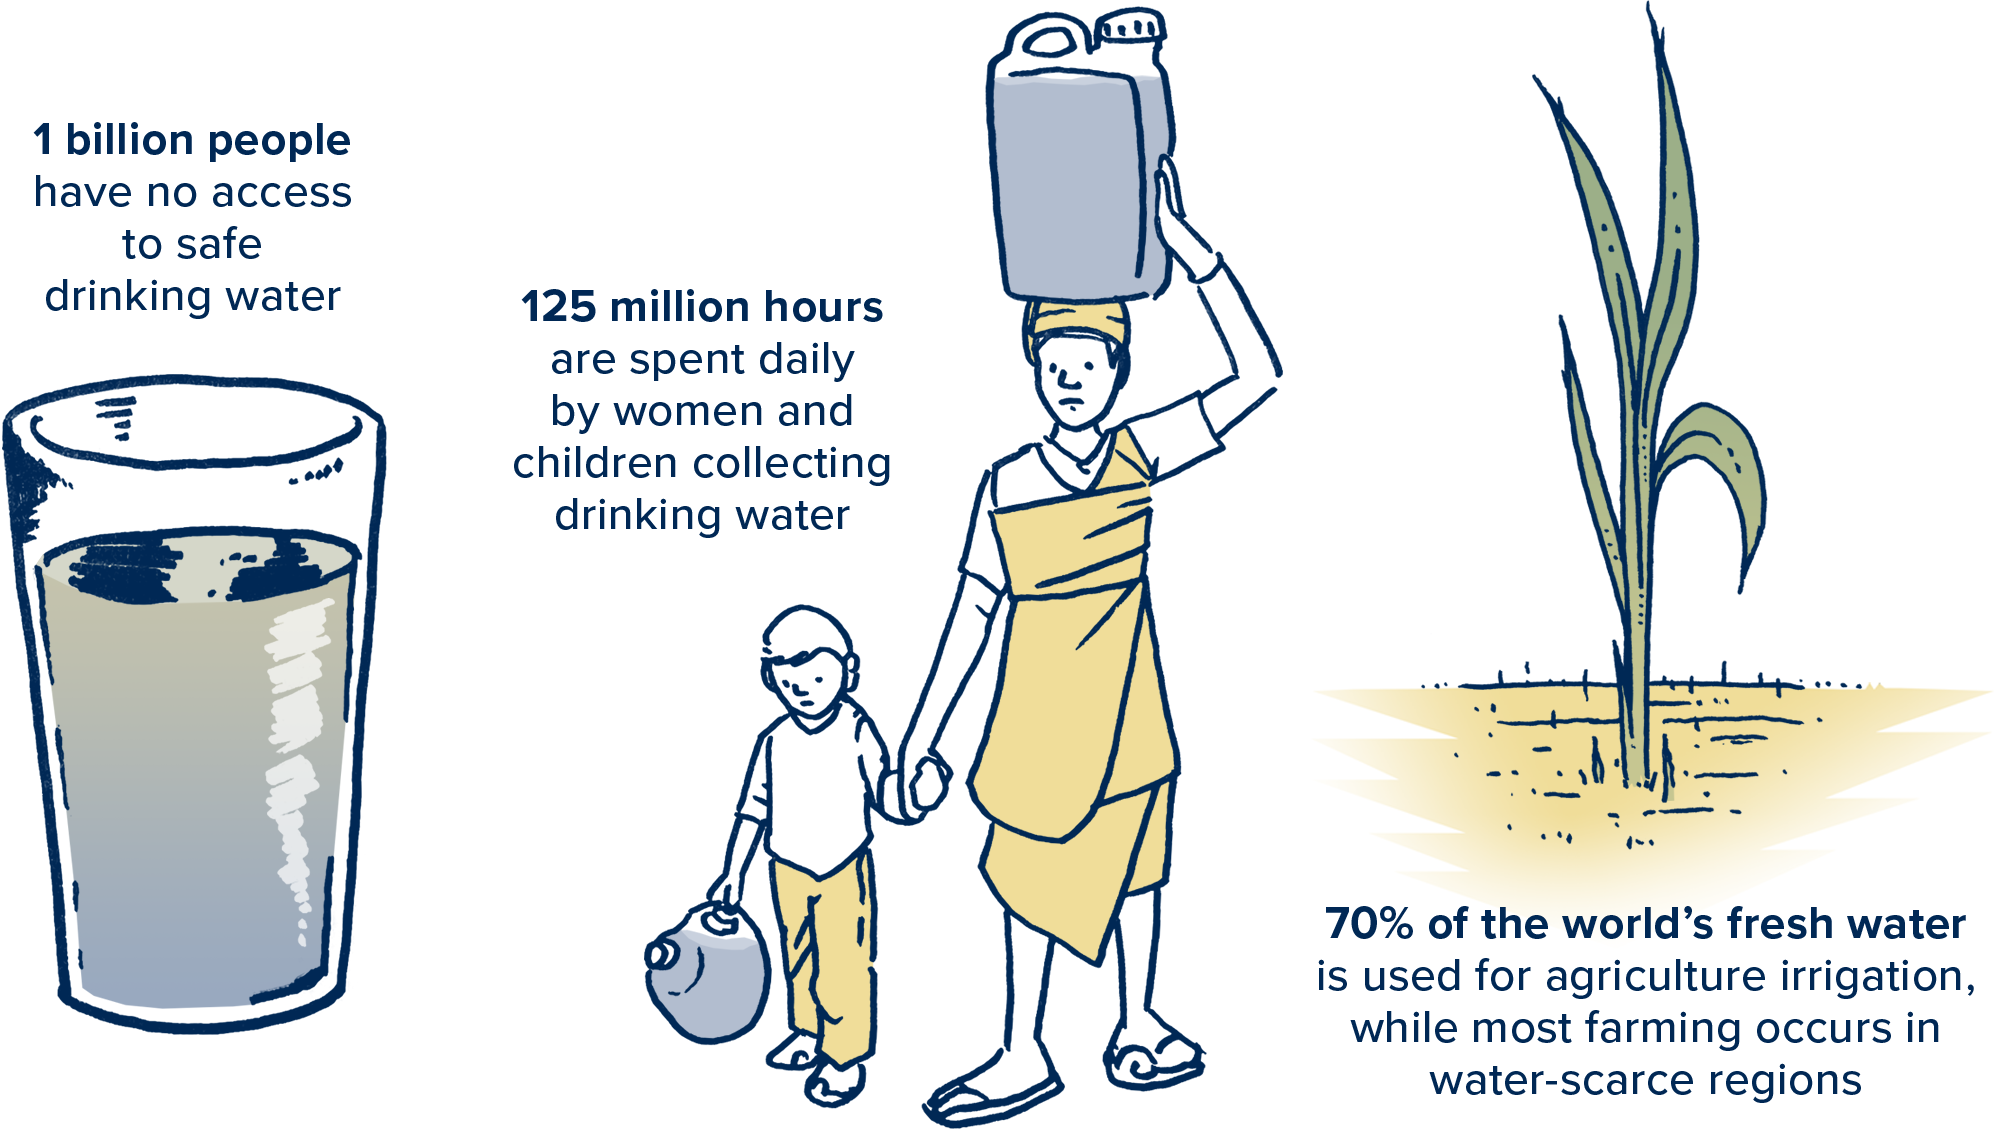 Safe access to drinking water for all, solving the global water crisis with water conservation and research from UC Davis and california drought applications globally.